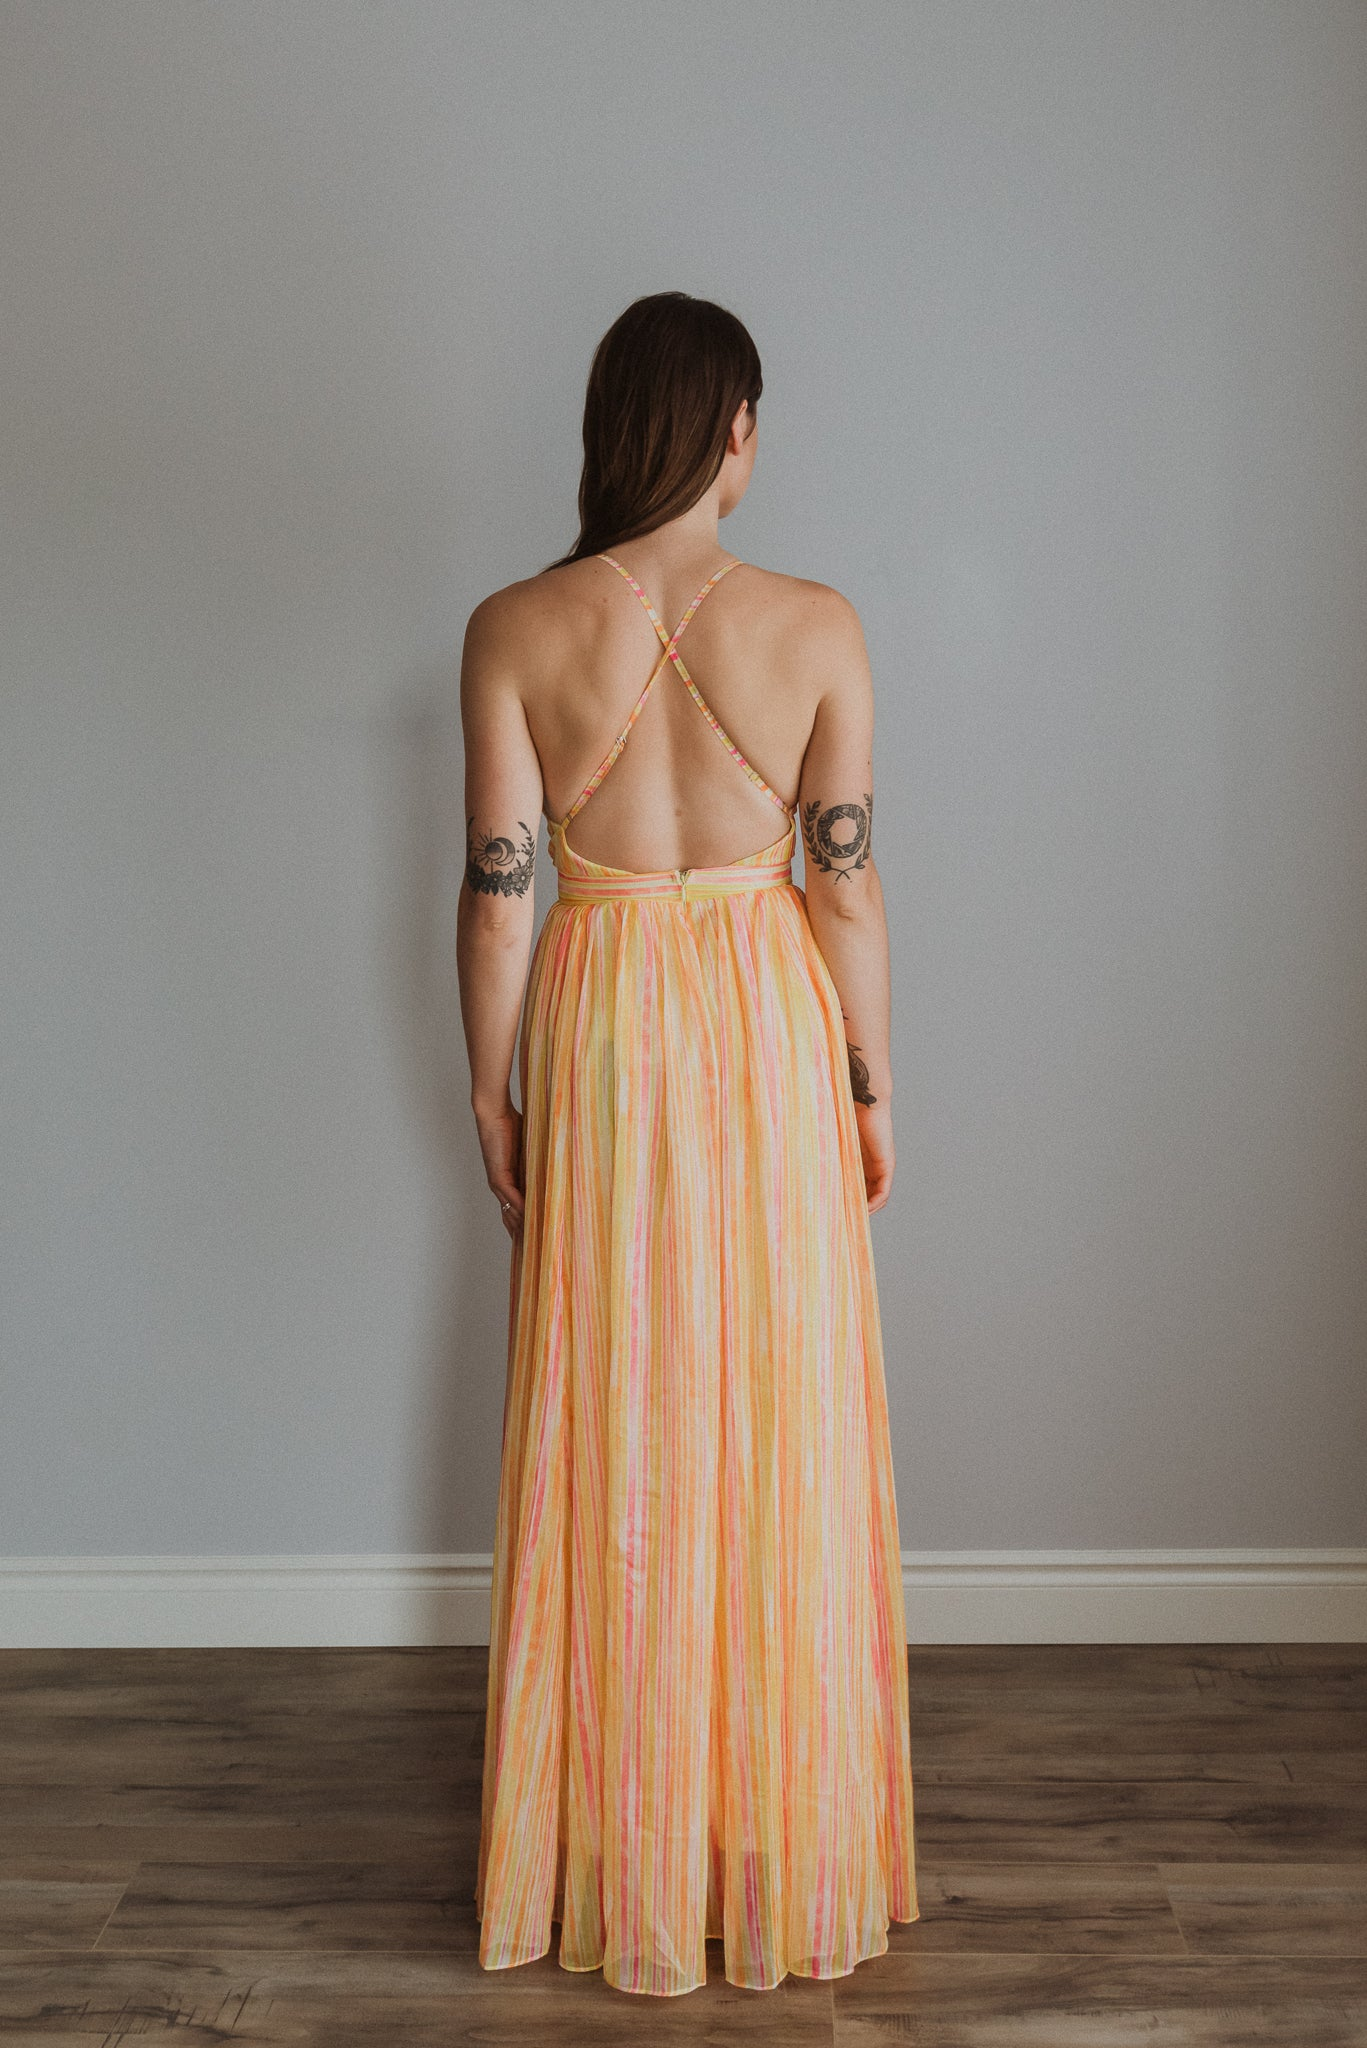 Candy Shop Striped Maxi Dress / FINAL SALE